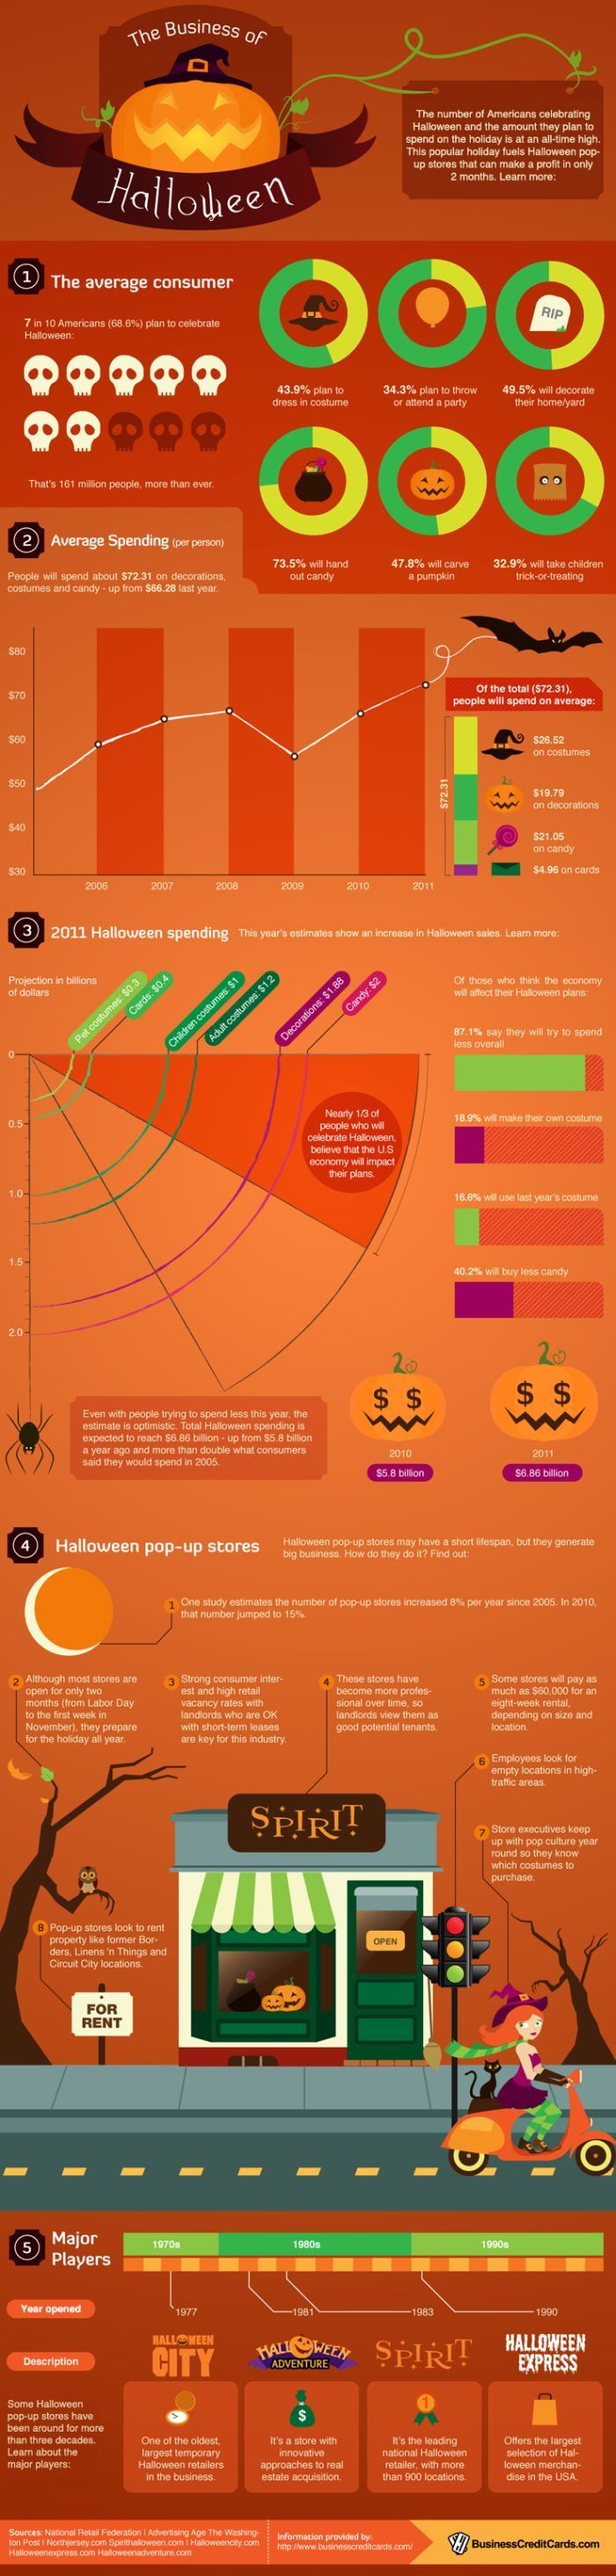 The Business Behind Halloween (infographic)